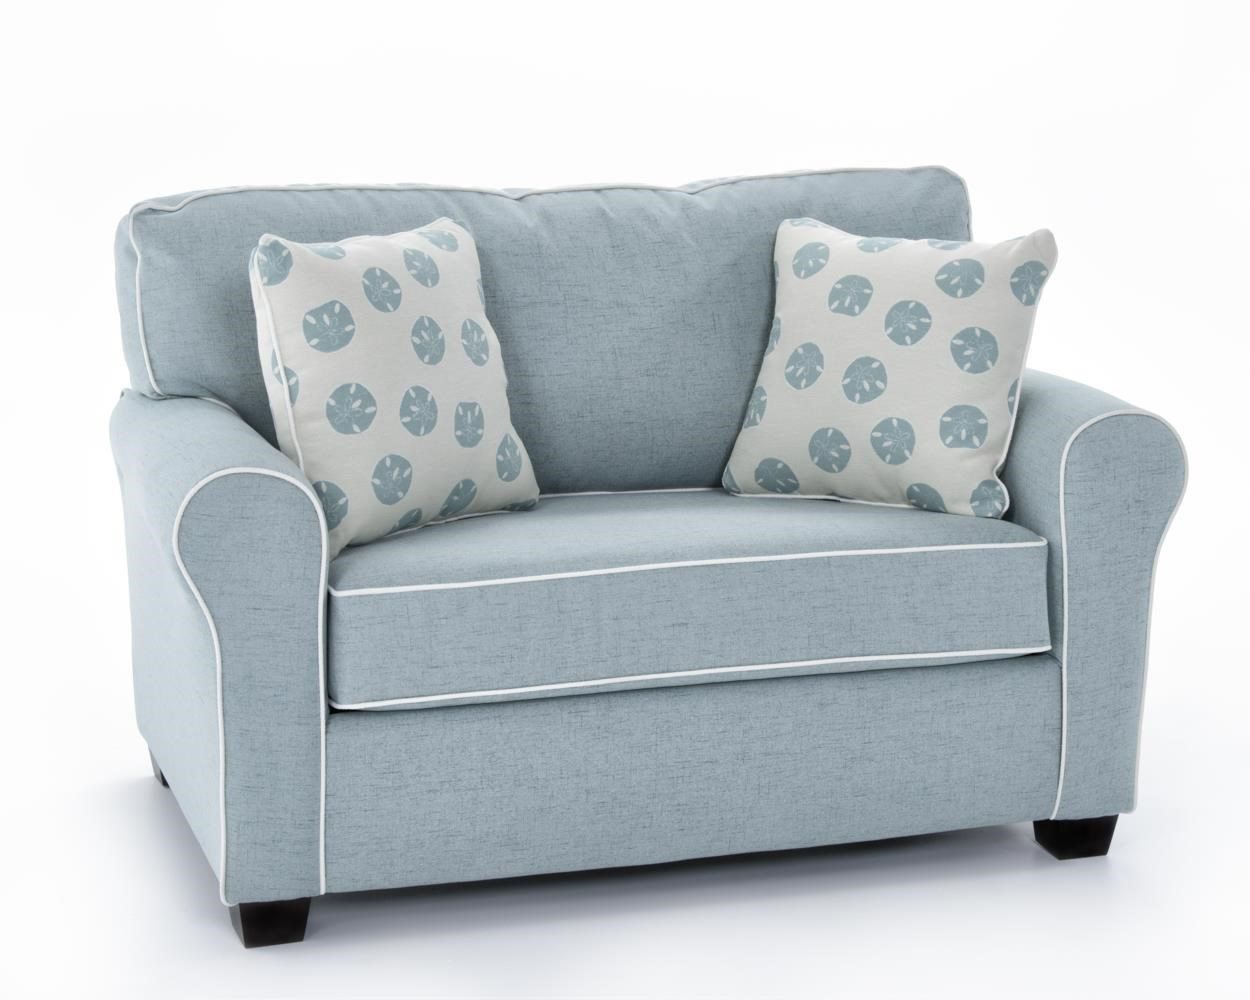 Best Home Furnishings Shannon C14te Chair Bed Twin Sofa